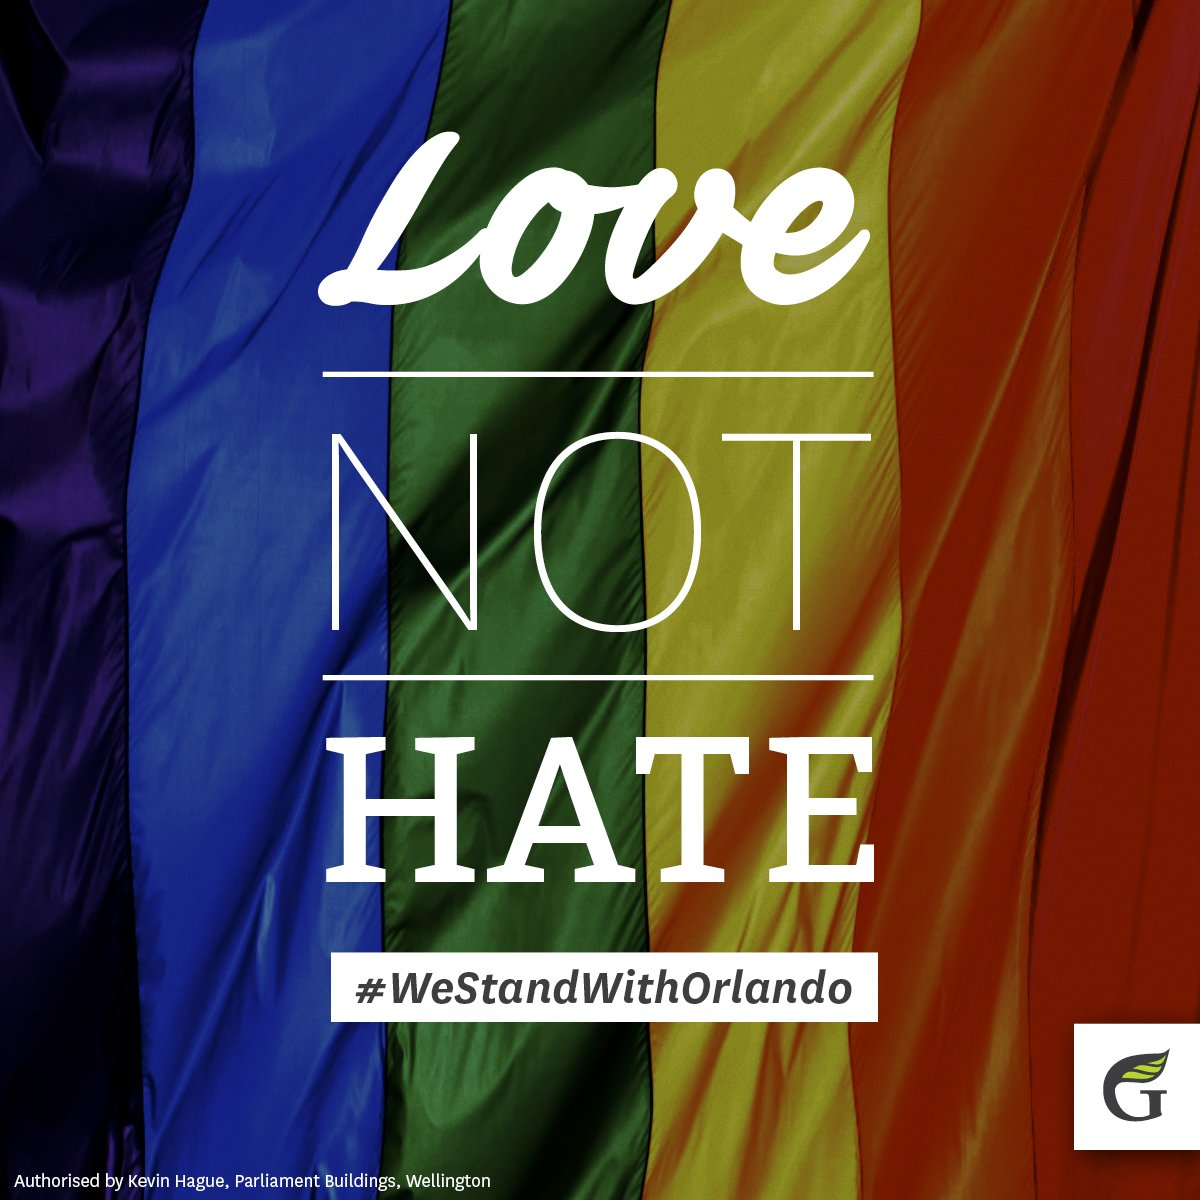 Our condolences go out to the families and friends of those who have been killed and have been injured #LoveIsLove https://t.co/U7tQ1cuVSY